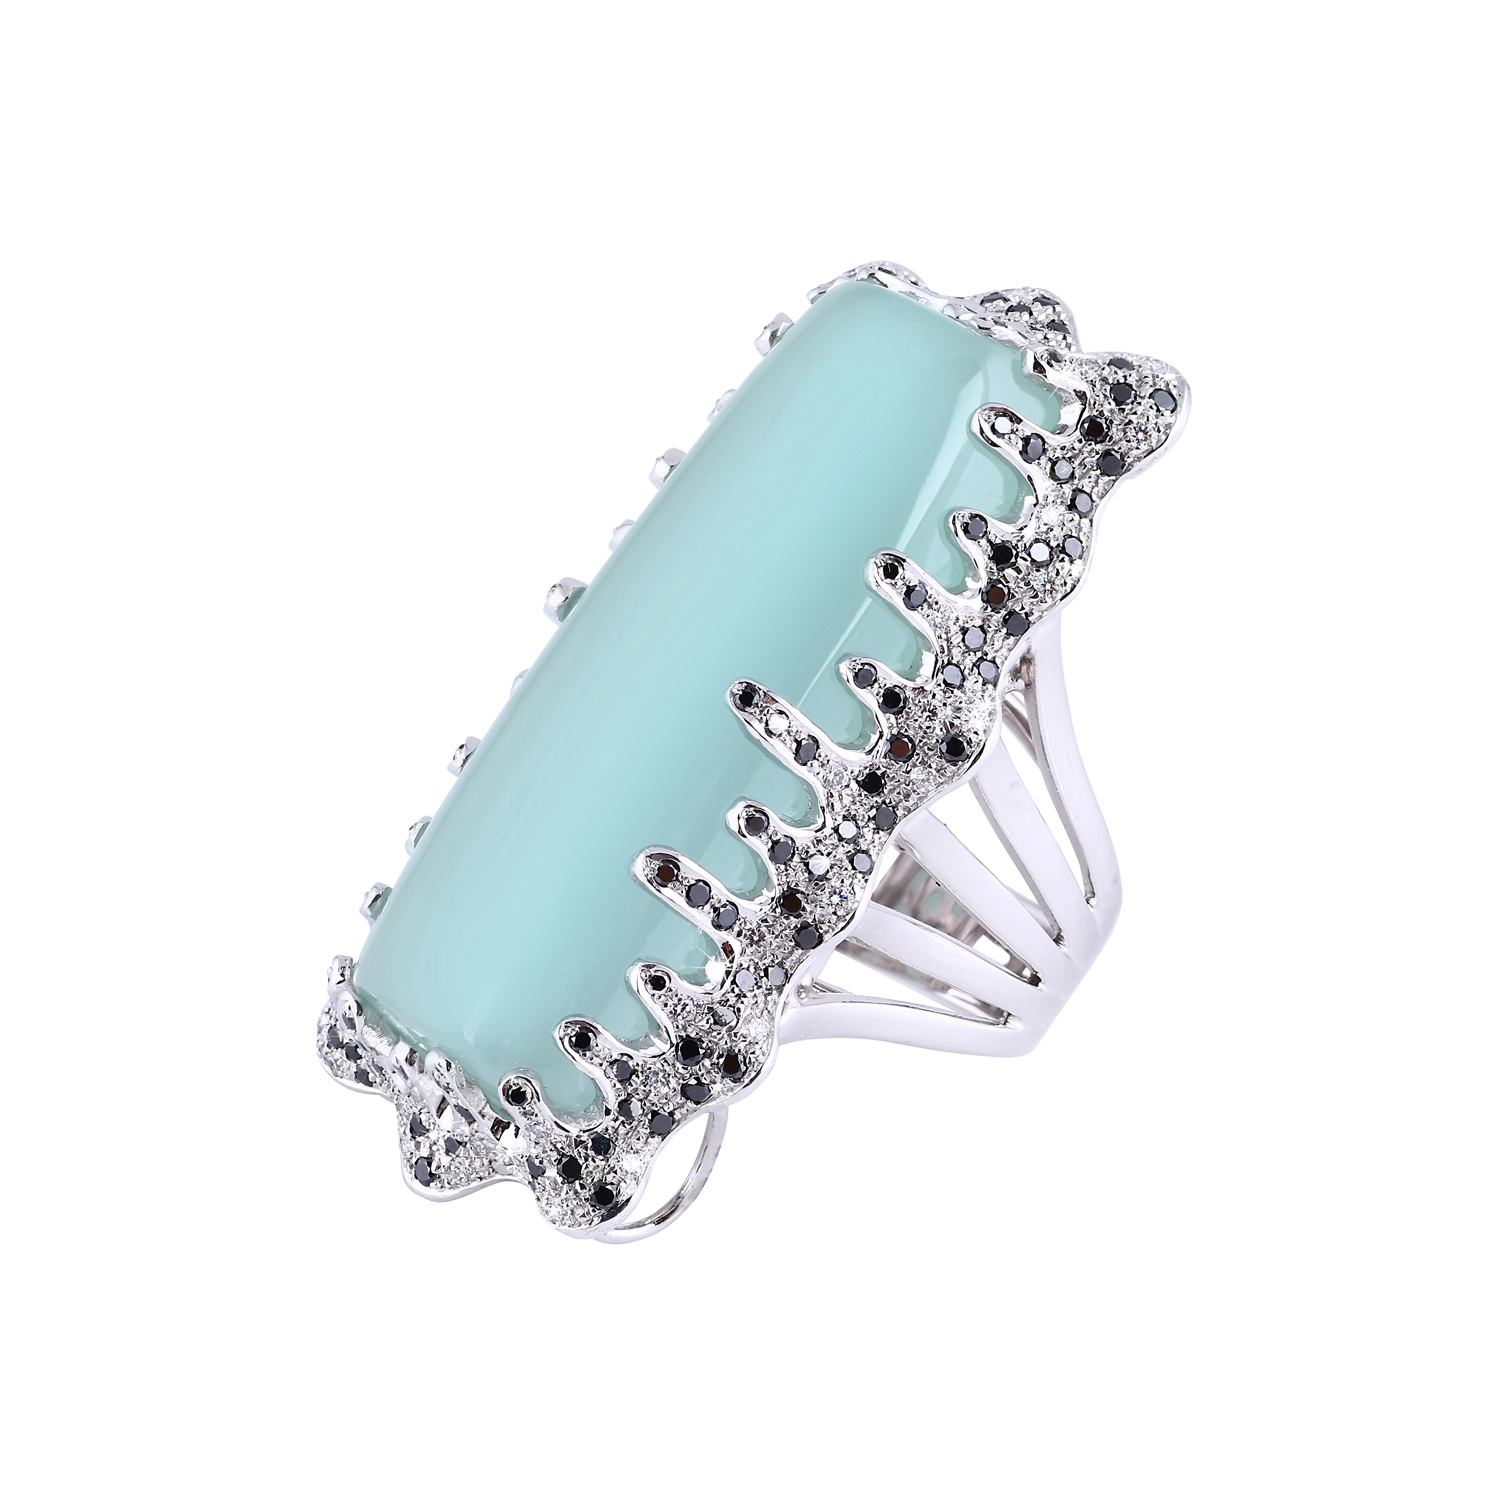 Bespoke Jewellery Singapore Exotic Gems & Jewellery Pte Ltd Aquamarine Diamond Ring